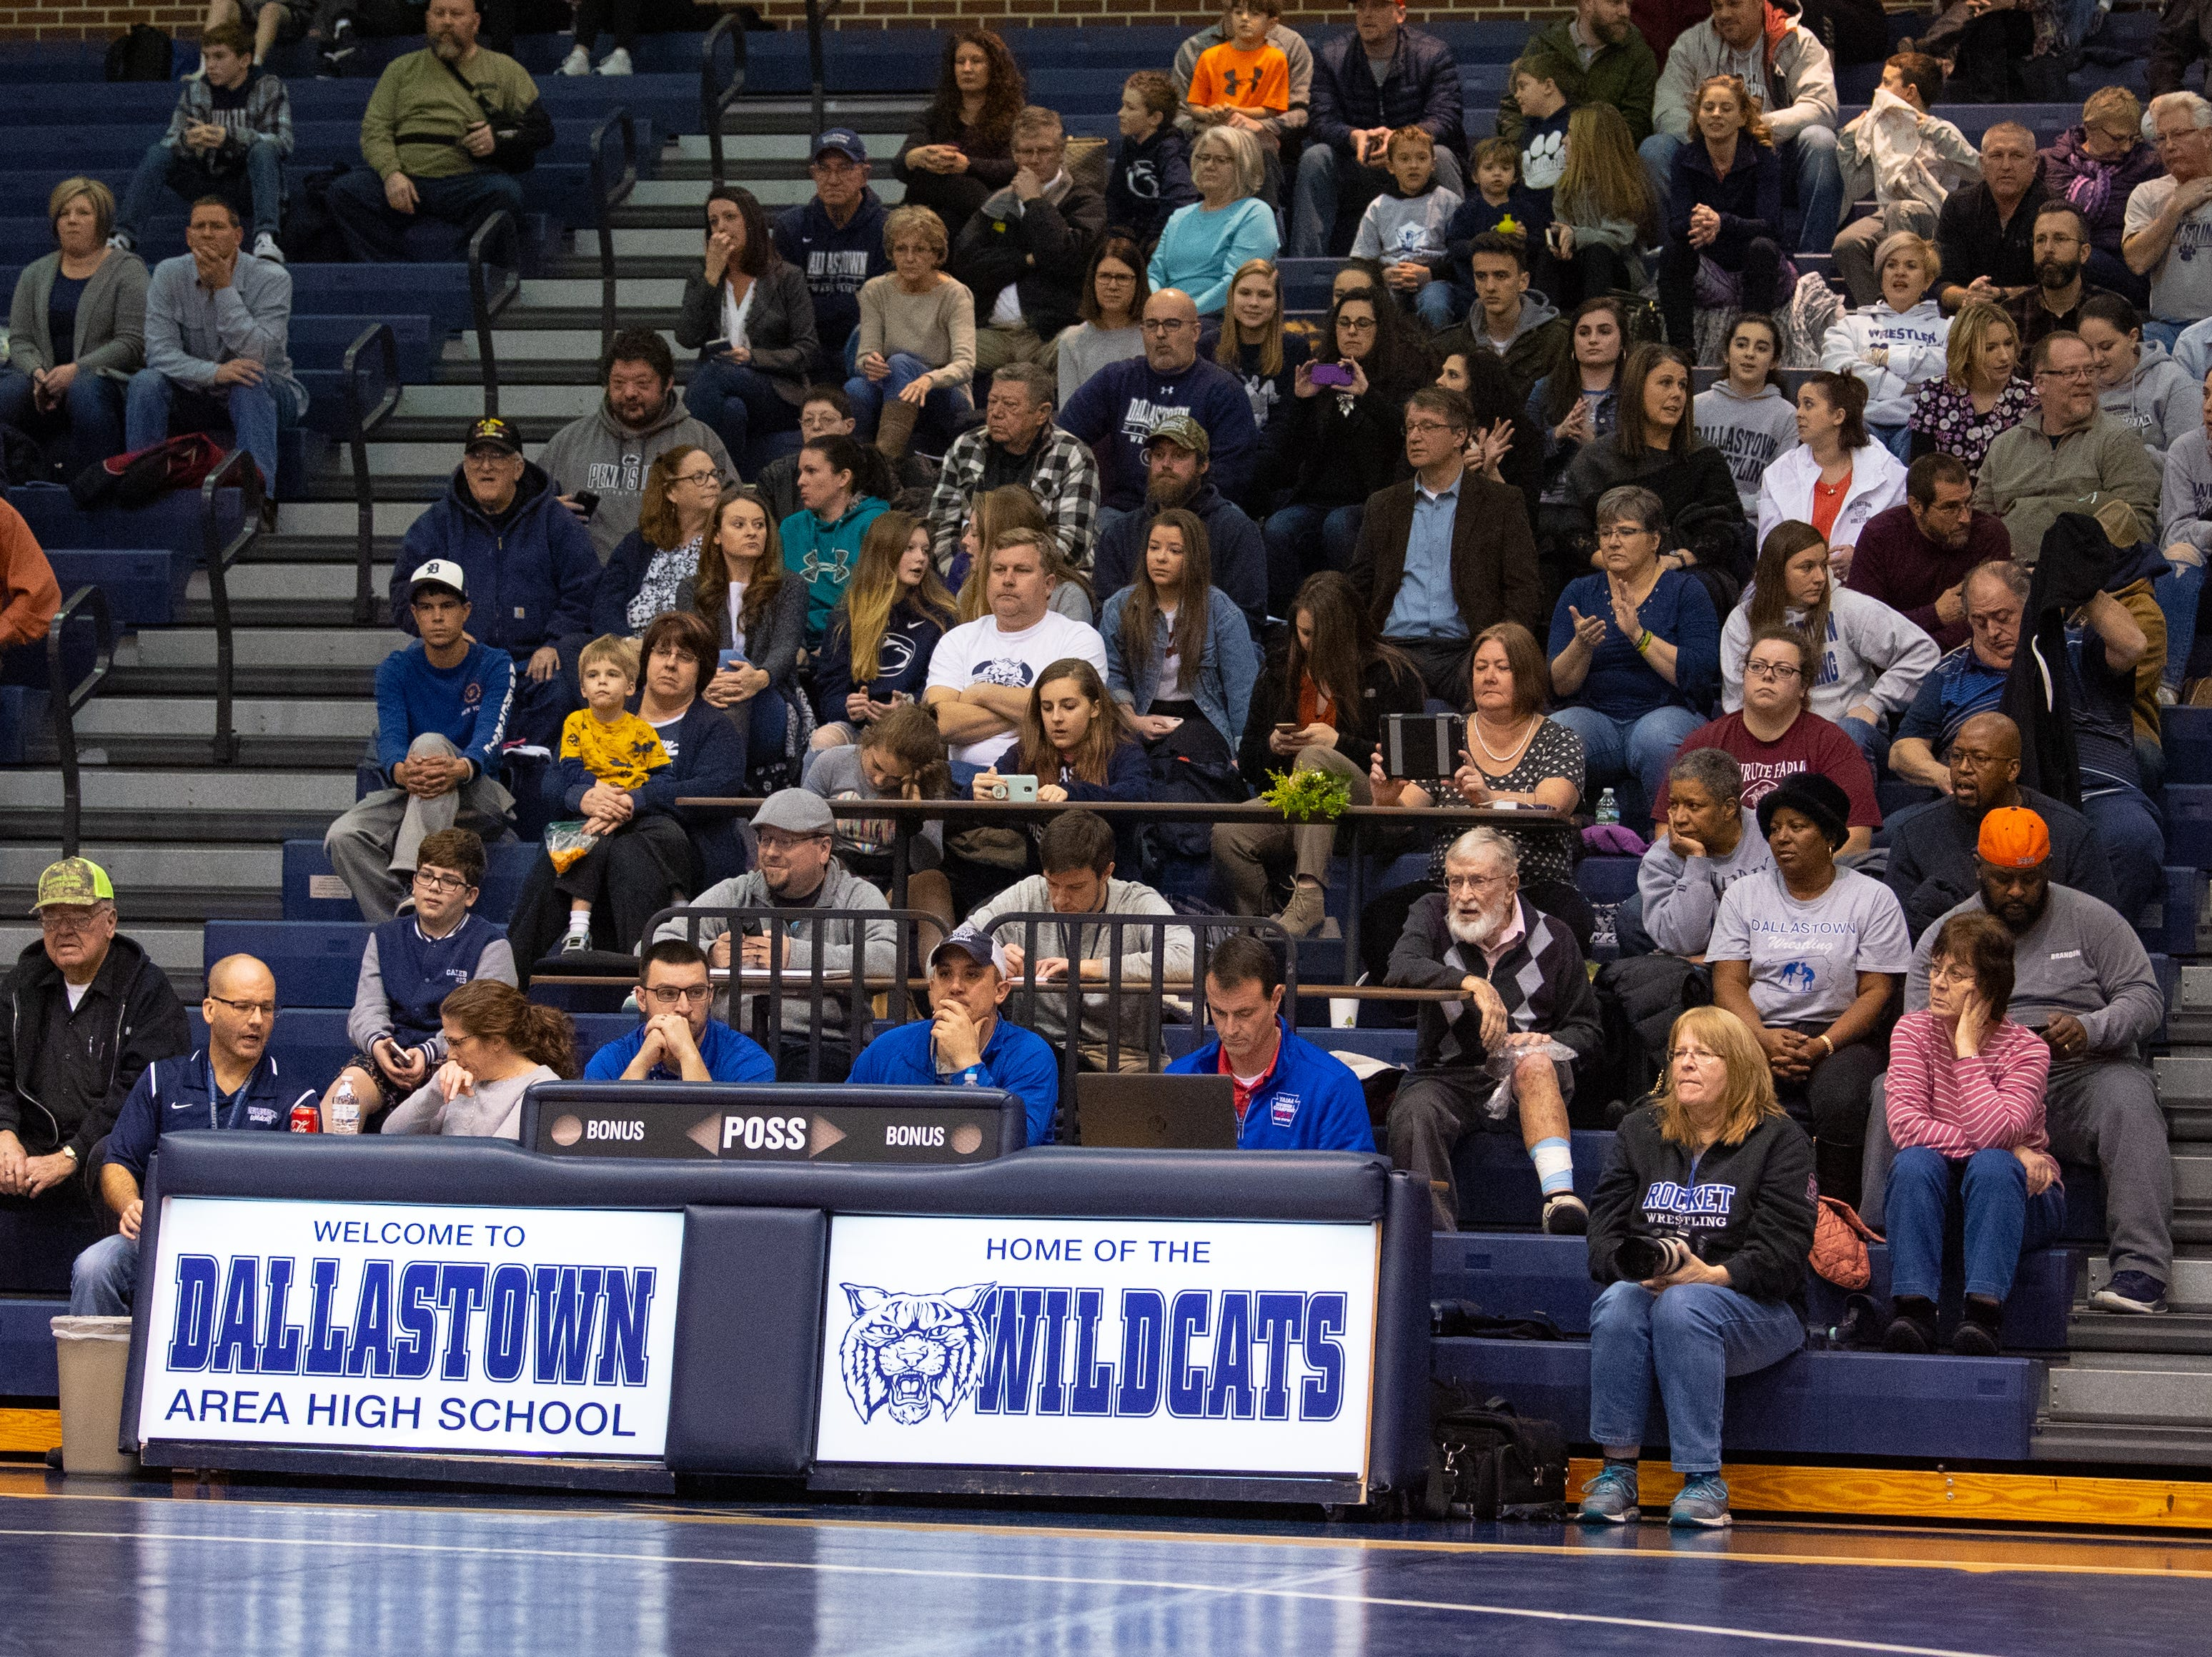 Dallastown Area High School is filled with fans looking forward to seeing good wrestling, January 17, 2019. The Wildcats defeated the Rockets 46-24.